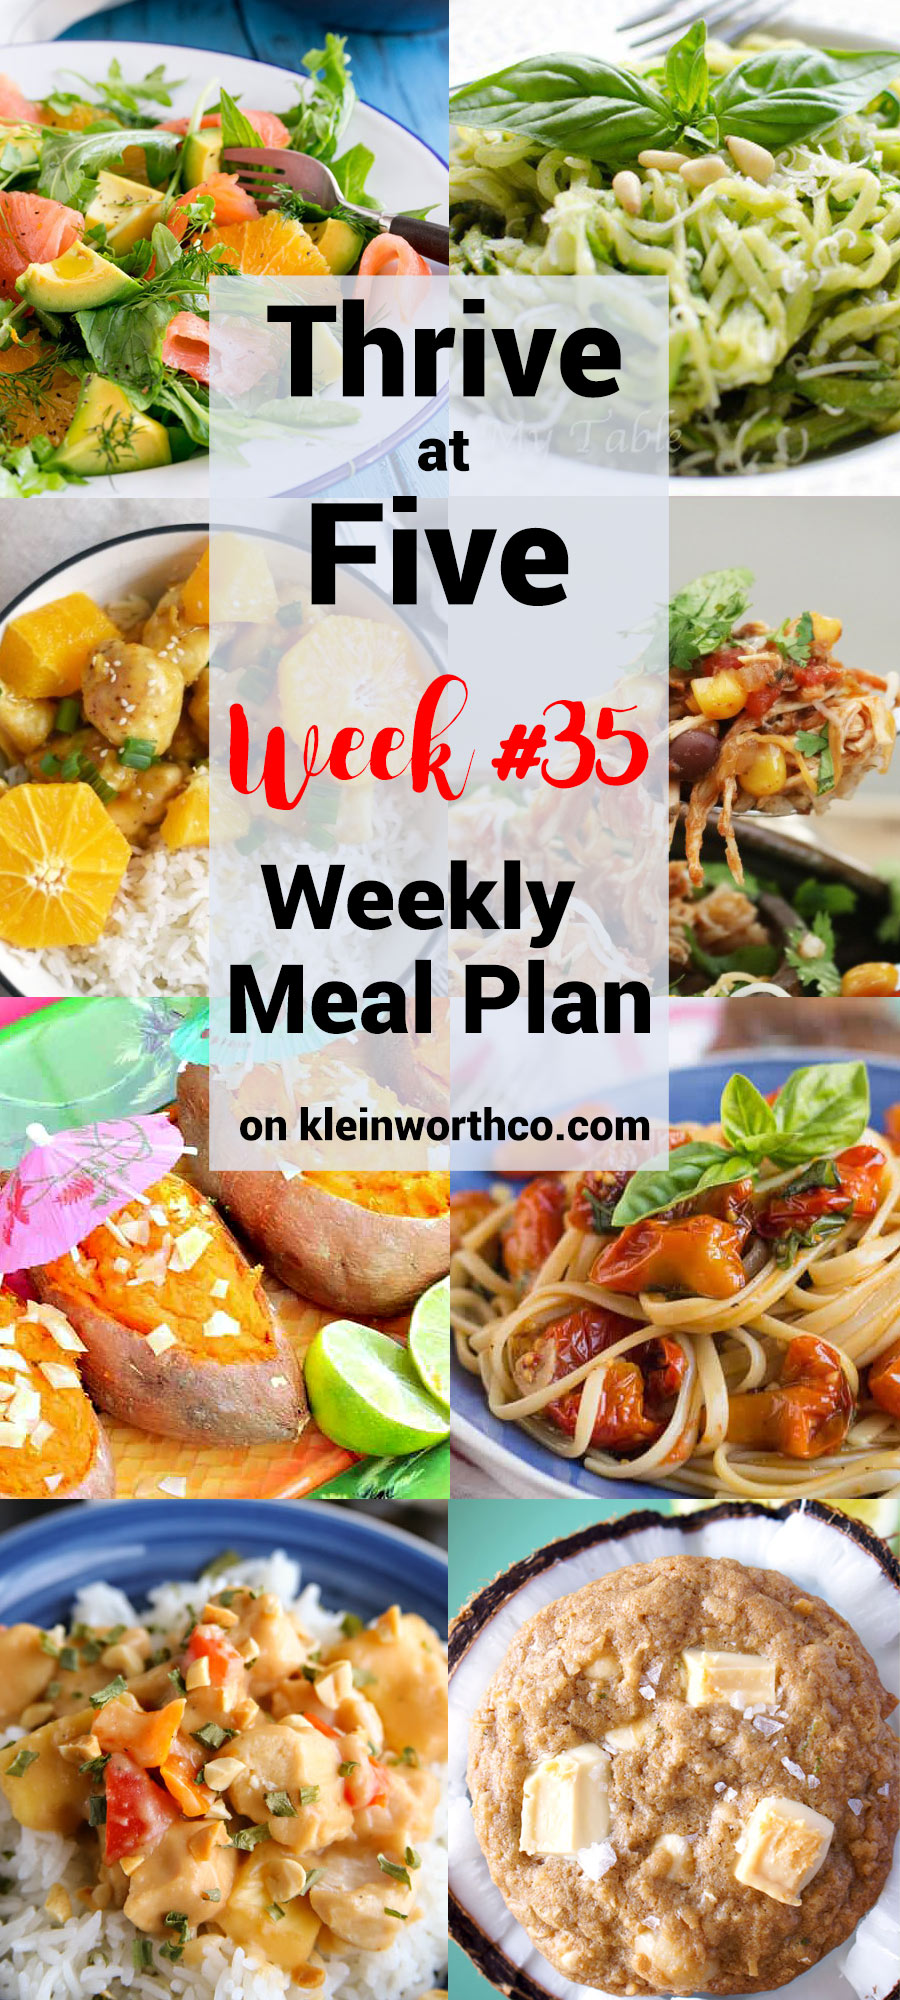 Thrive at Five Meal Plan Week 35